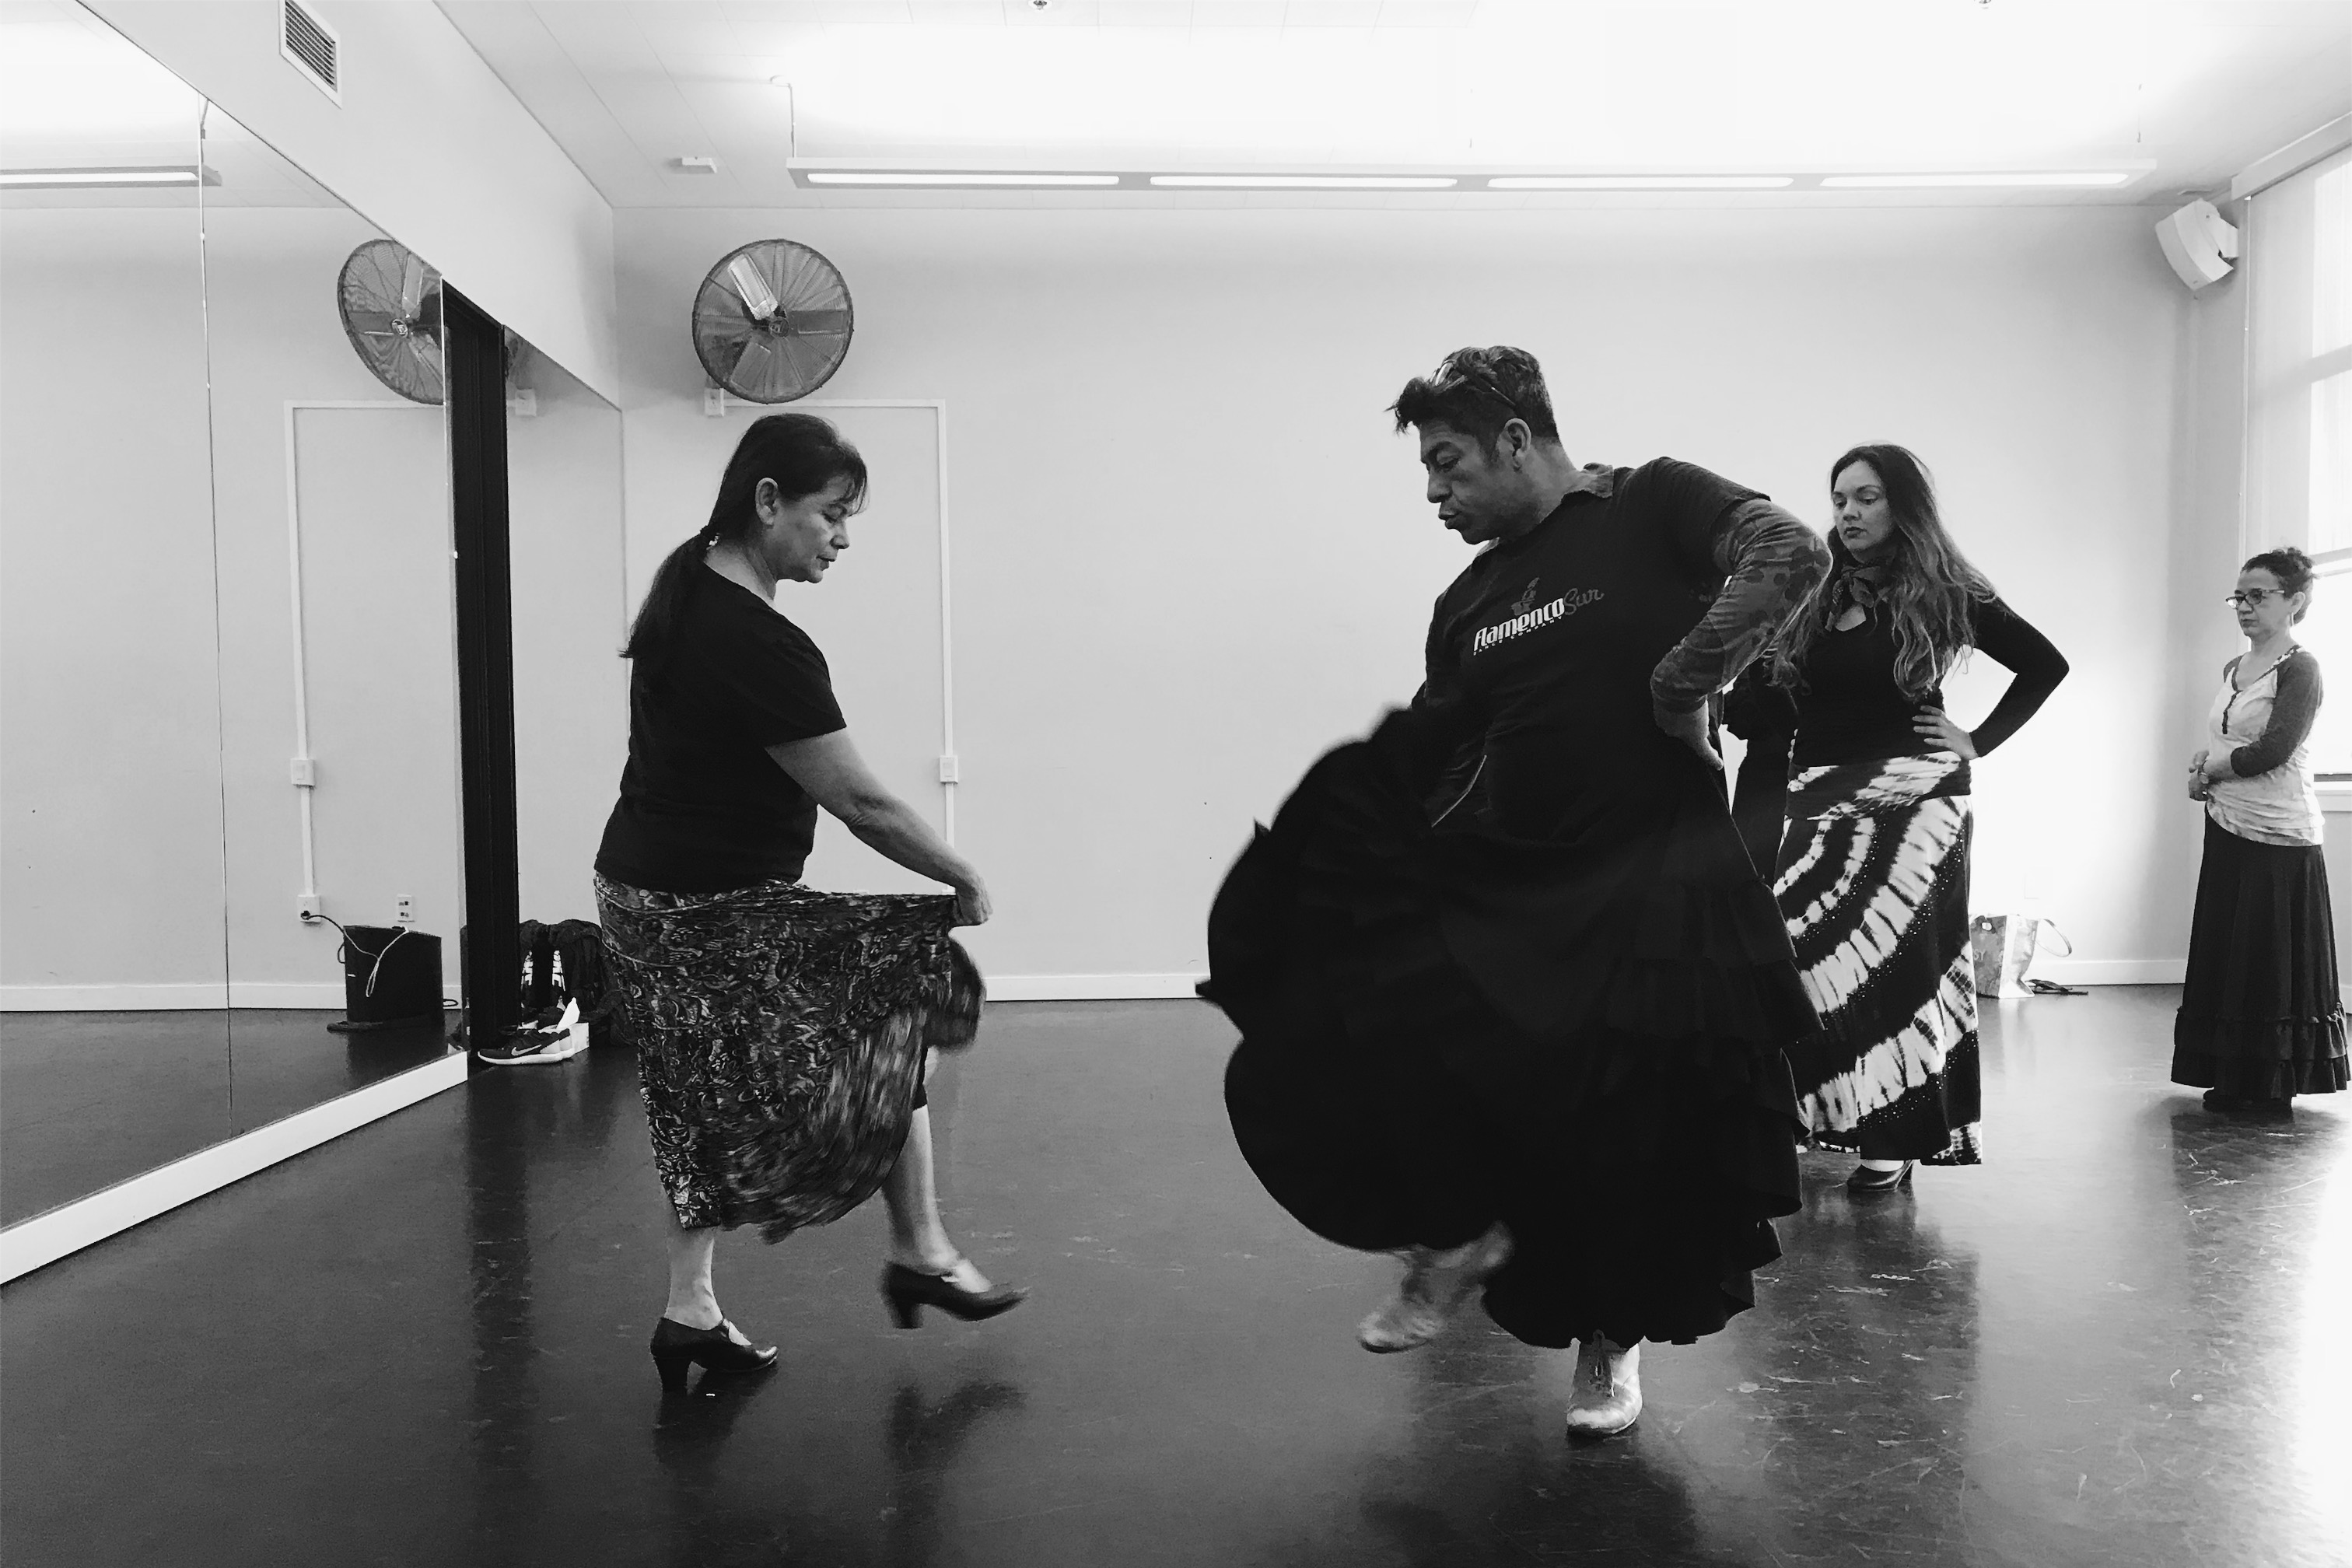 Flamenco dance instructor